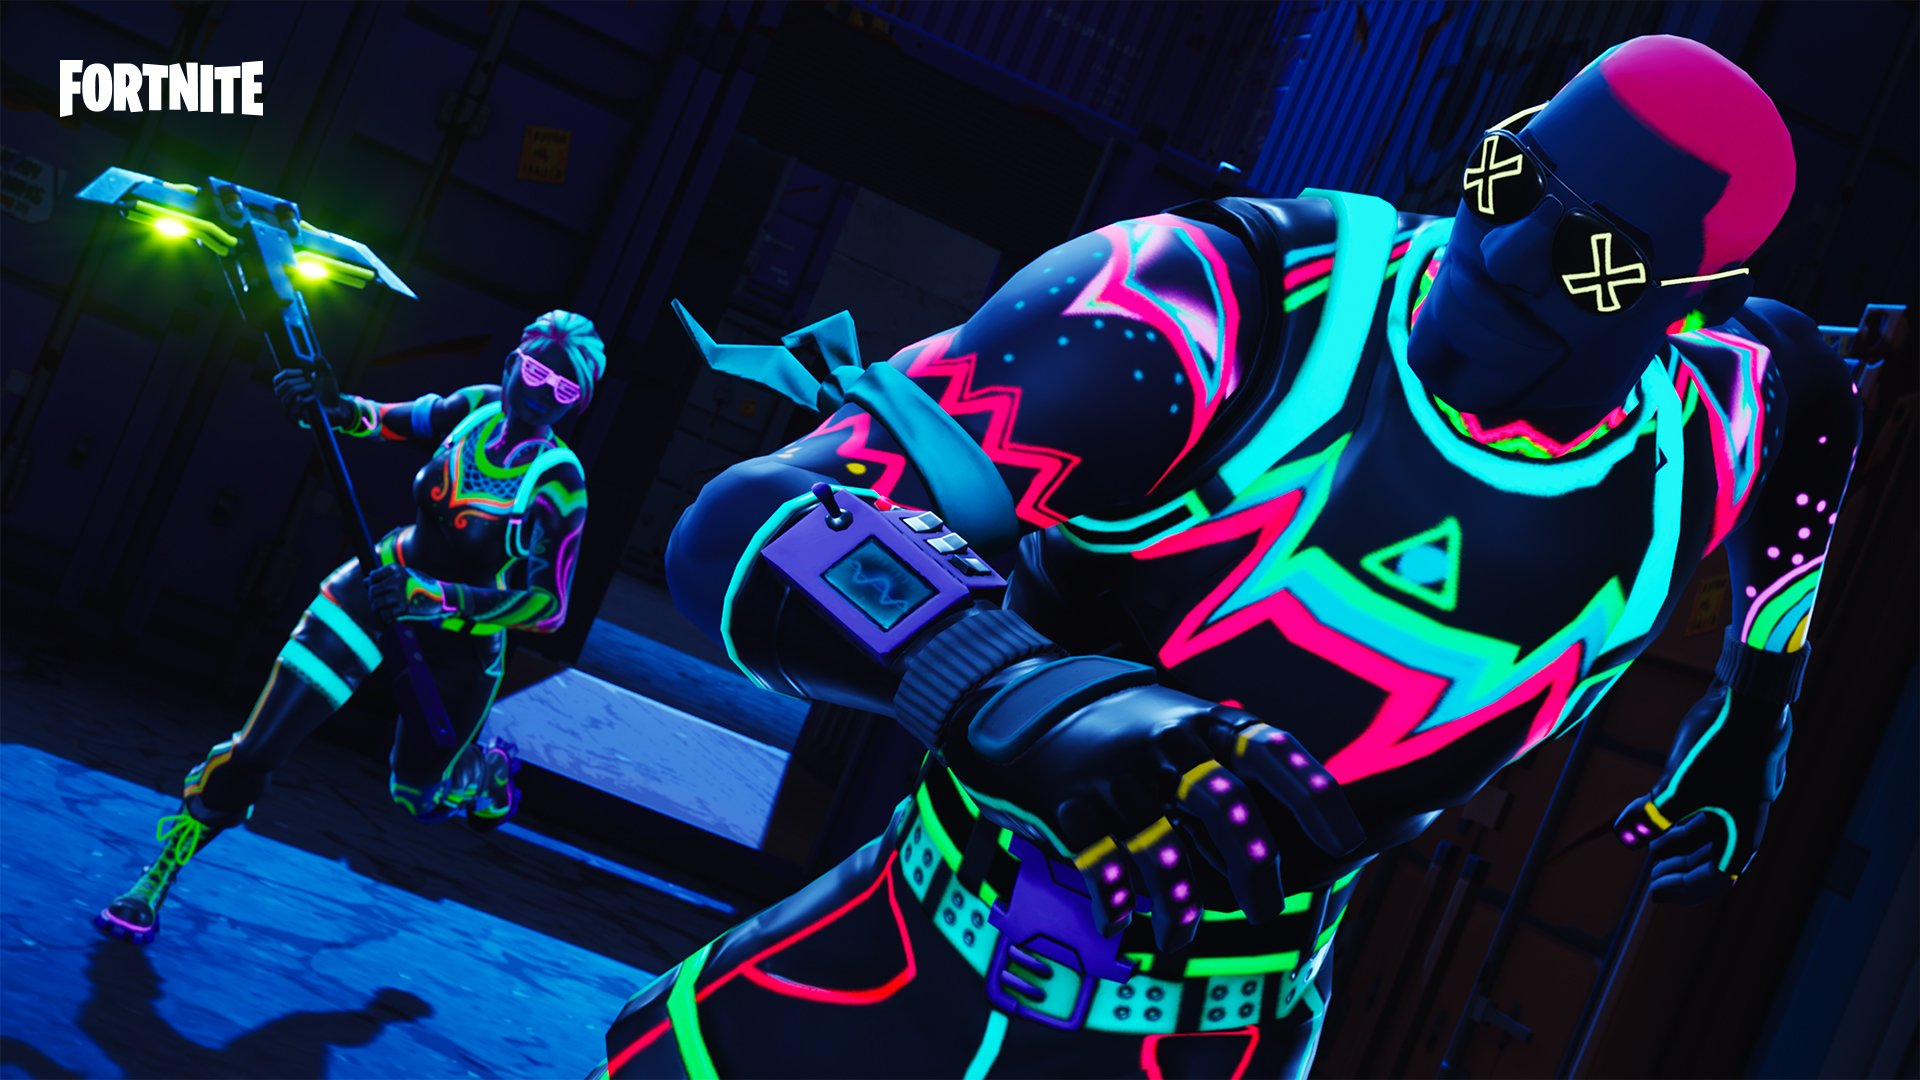 Bild Fortnite Neonleuchten Set Promo Jpg Fortnite Wiki Fandom